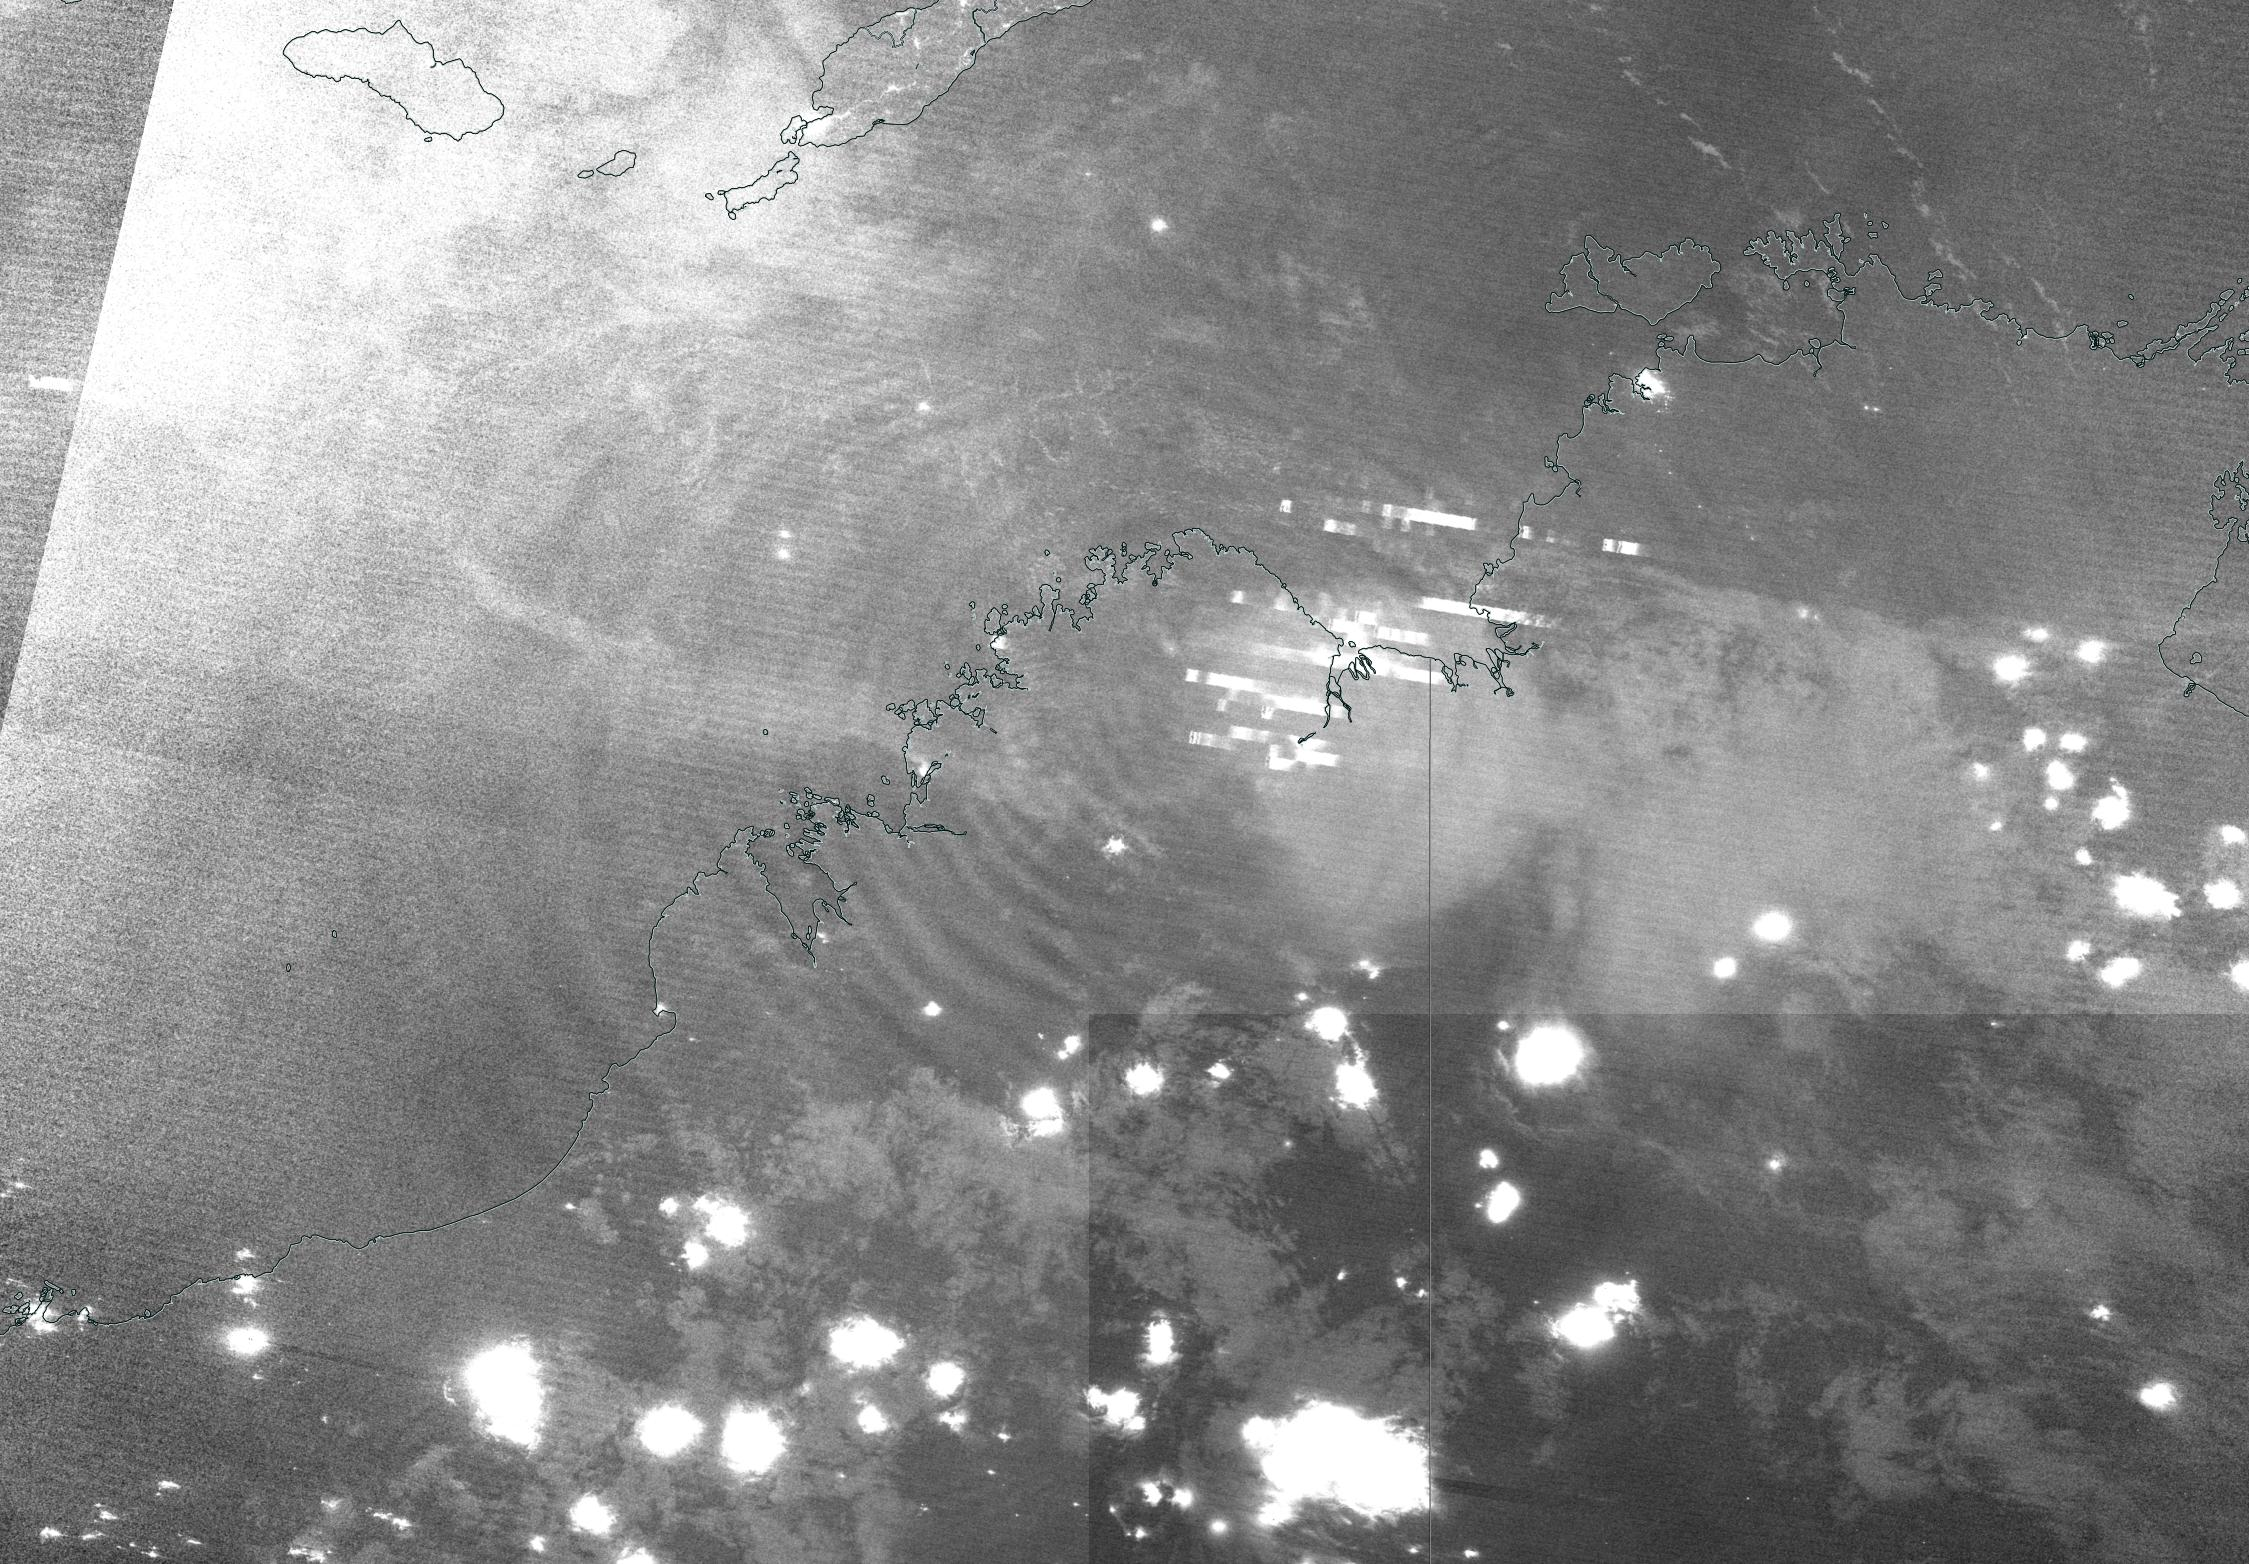 Black and white image showing clouds and bright streaks indicating lightning. Ripples radiating from the center of the image are gravity waves.